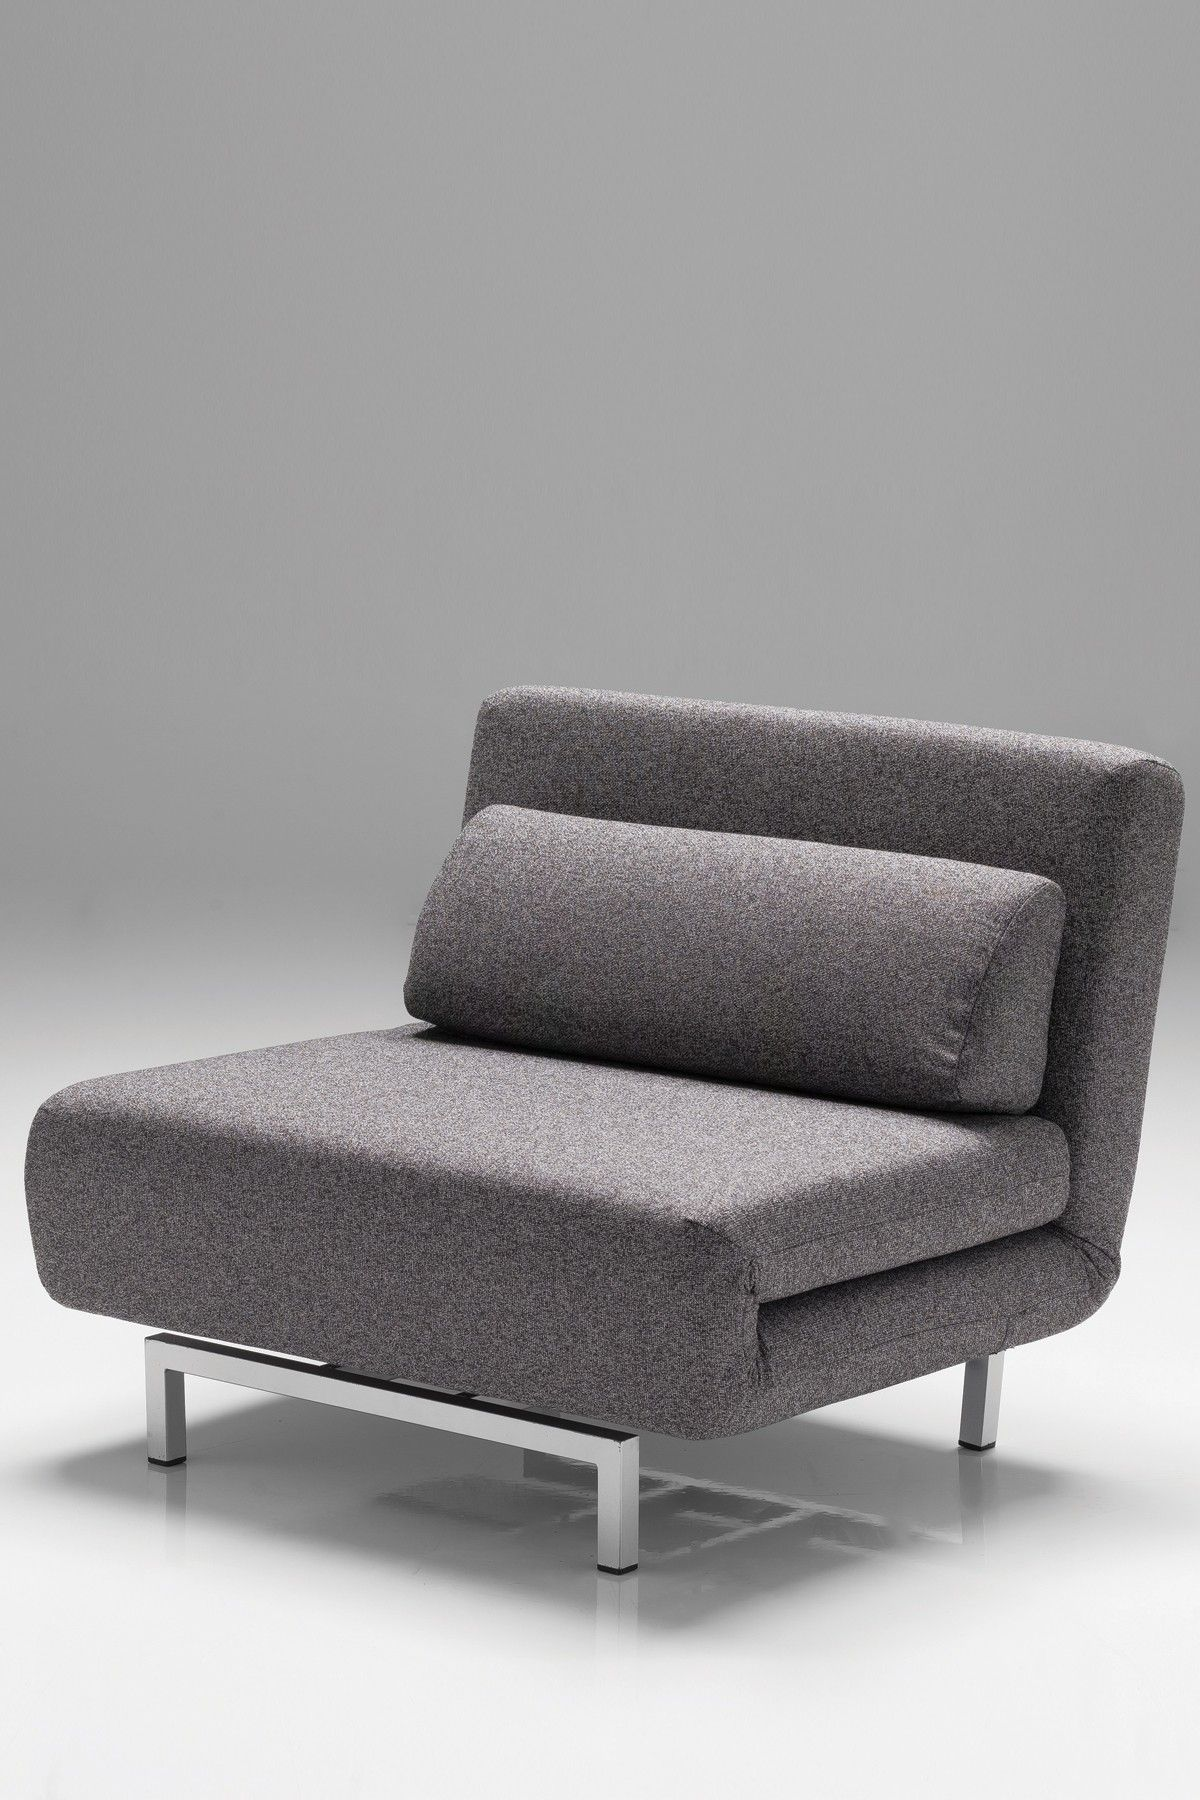 mobital iso convertible chair bed charcoal tweed home pinterest living rooms future. Black Bedroom Furniture Sets. Home Design Ideas